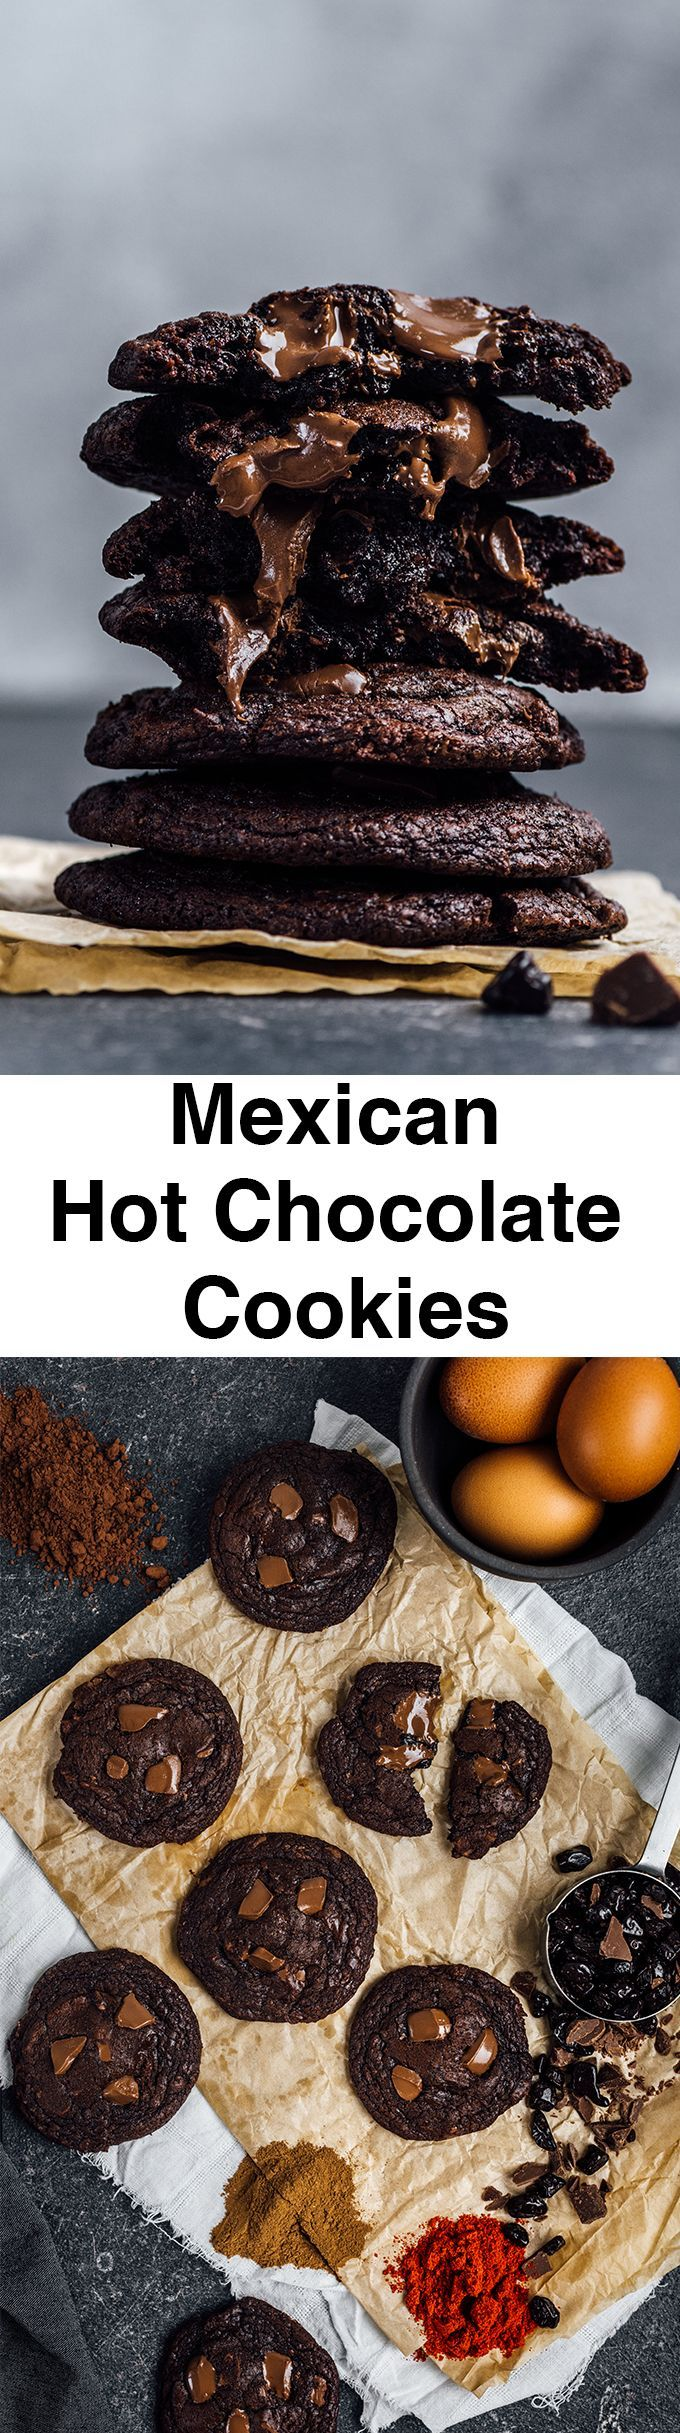 Mexican Hot Chocolate Cookies are literally the best chocolate cookies I've ever tasted and made. Super chewy on the edges, super soft on the center and loaded with chocolate with a spicy kick.